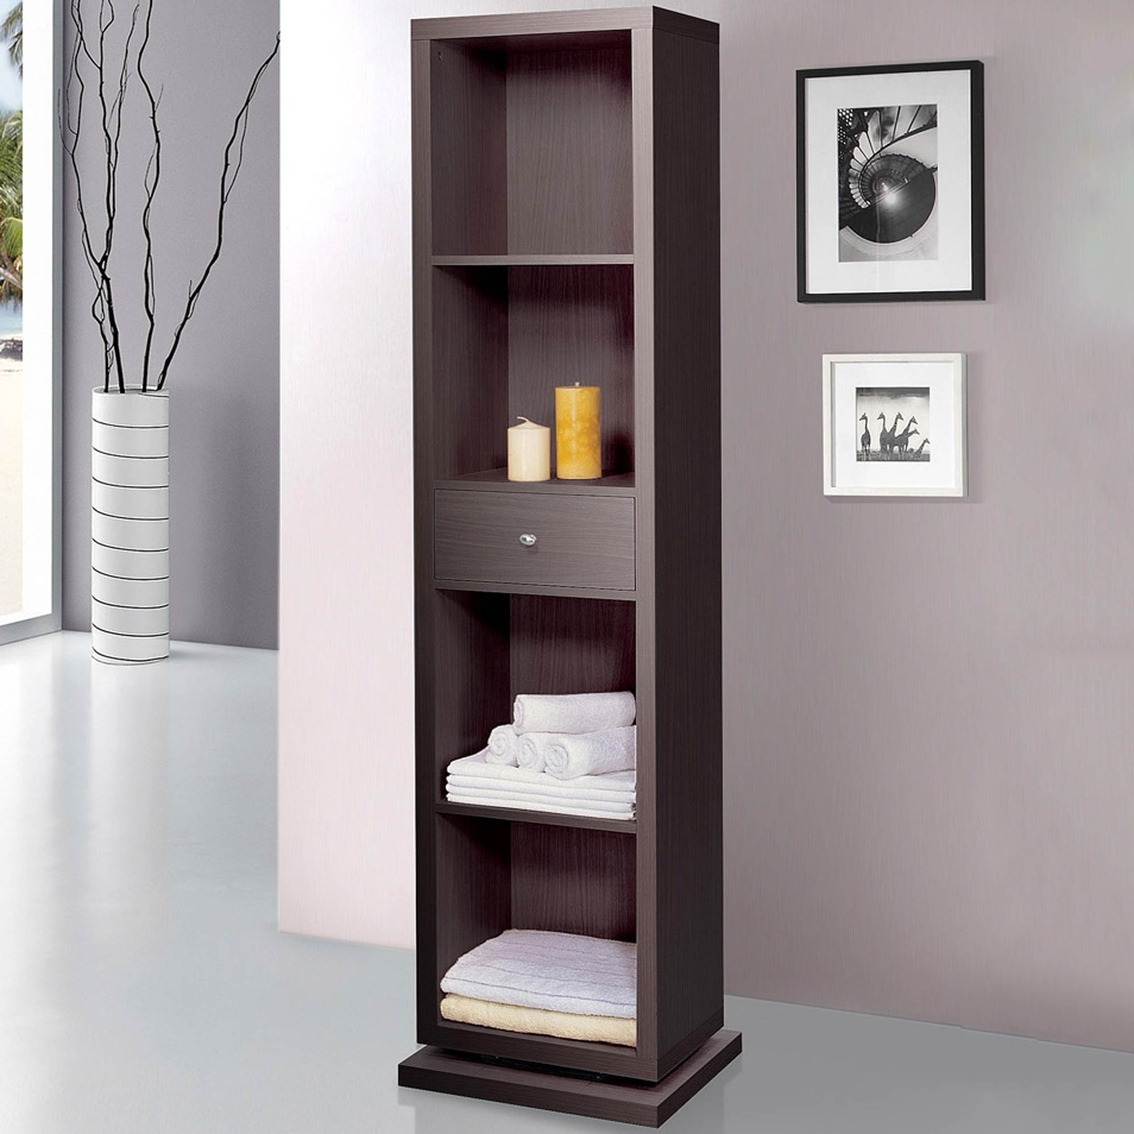 Artiva Bella Home Deluxe Cabinet Shelving Unit With Swivel To Full Length Mirror Bookcases